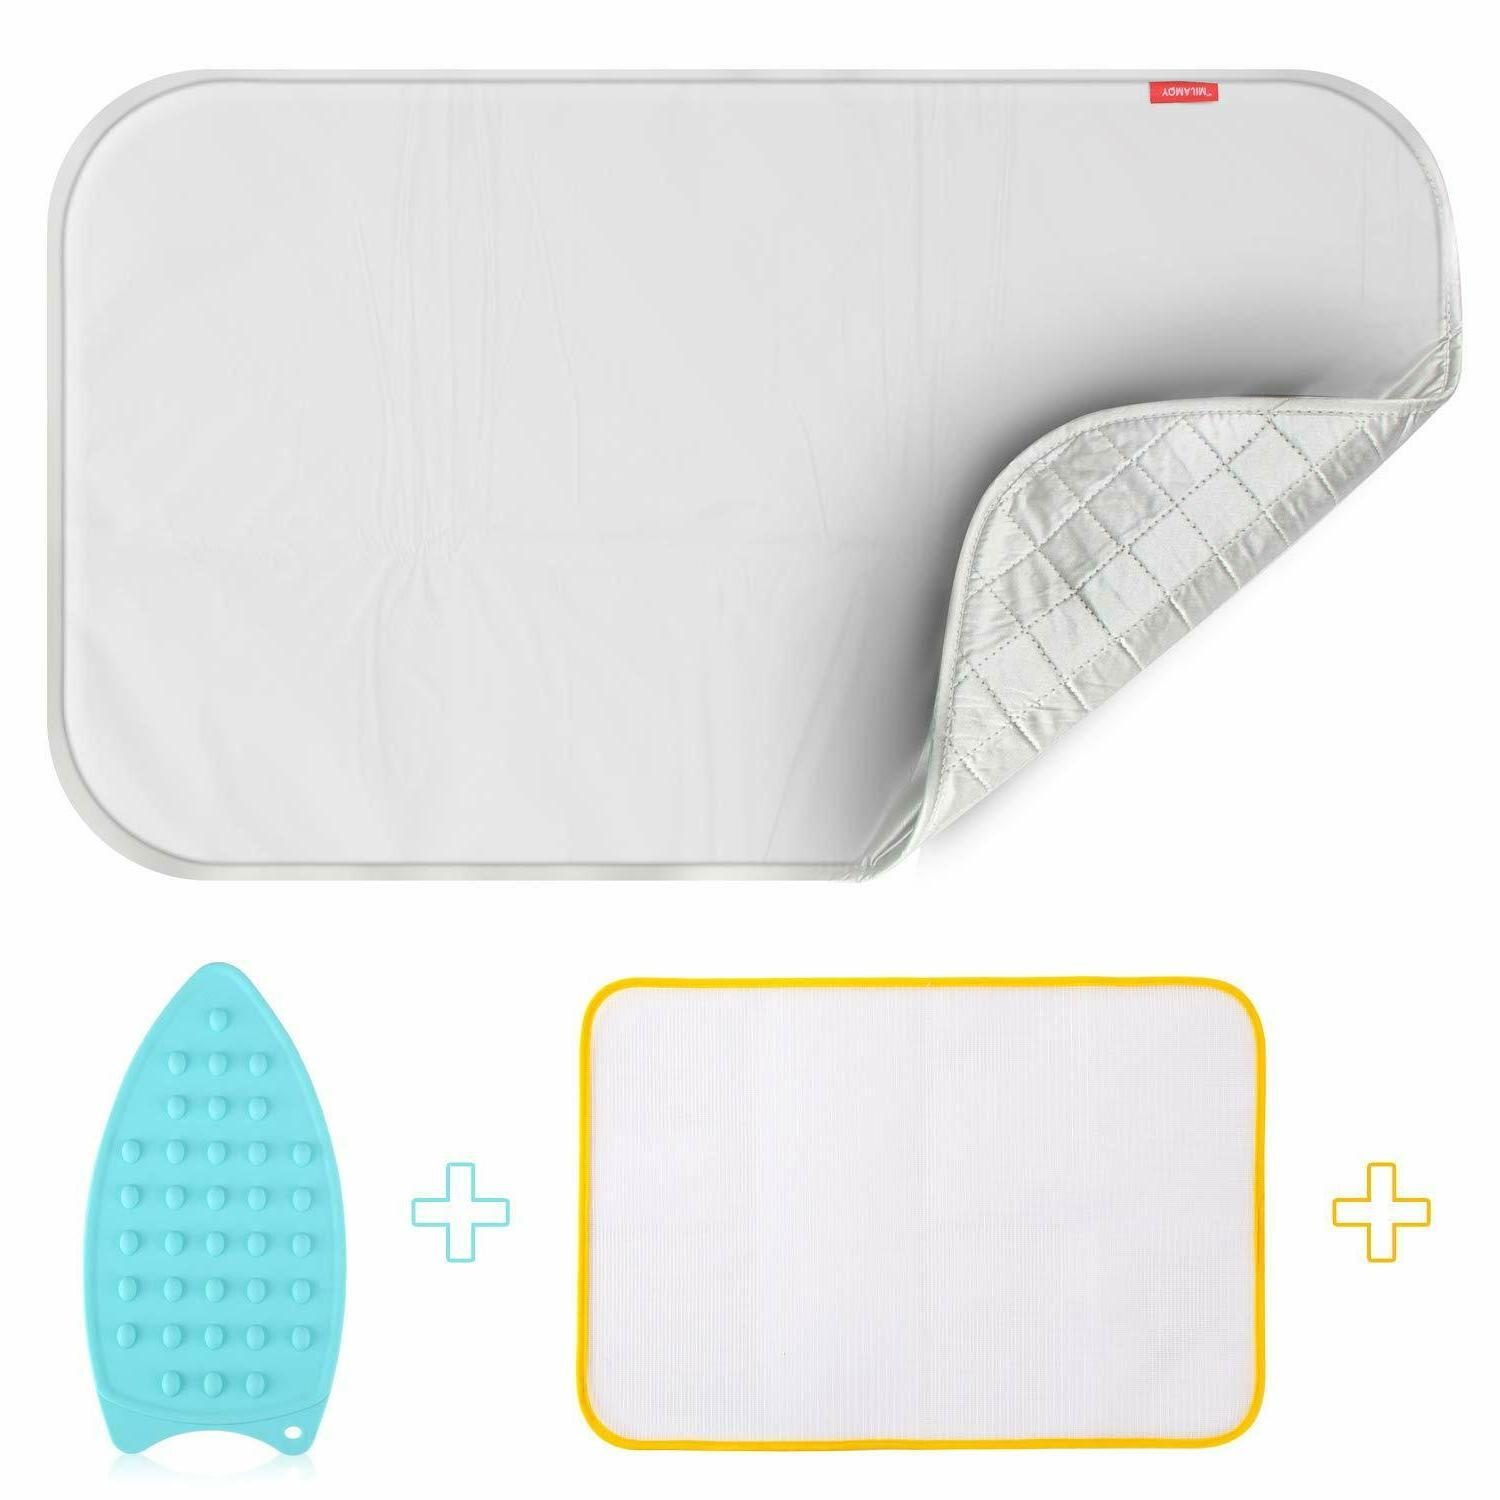 Polder Ibc-9452Bbb Replacement Ironing Board Pad And Cover F